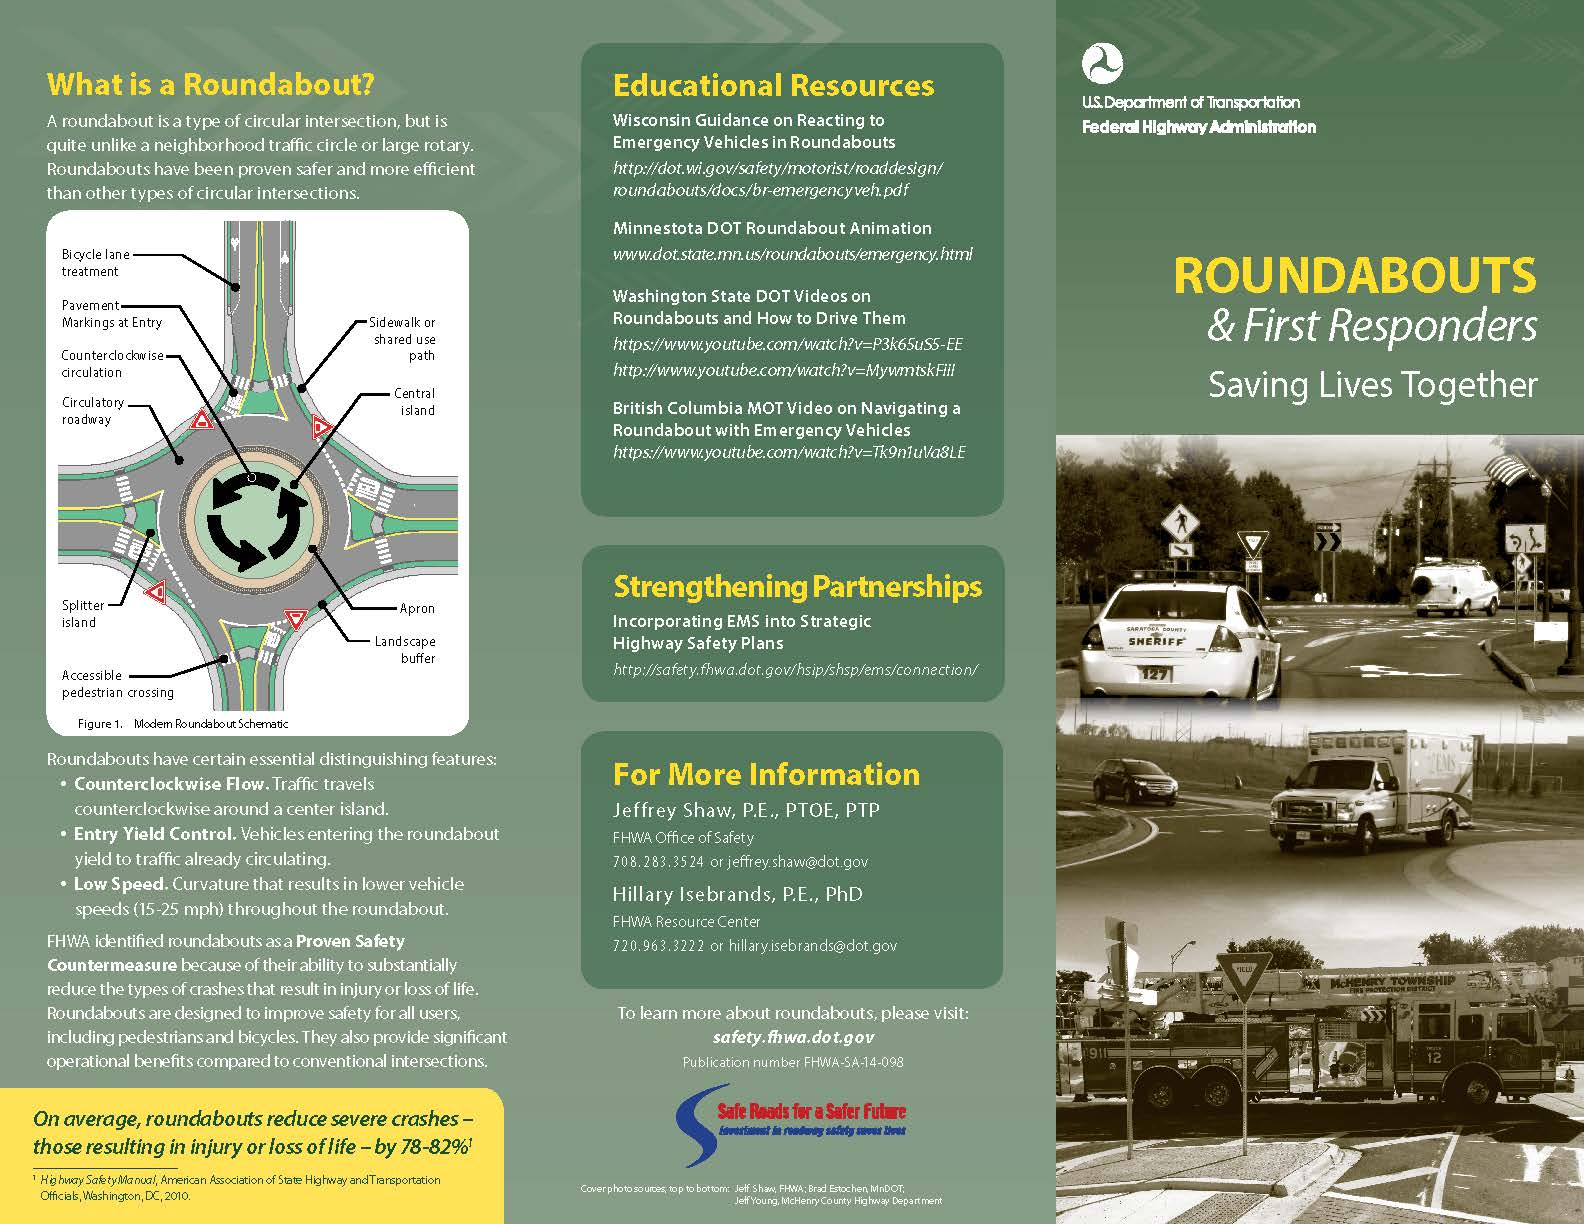 FHWA-SA-14-098 Roundabouts and First Responders Br